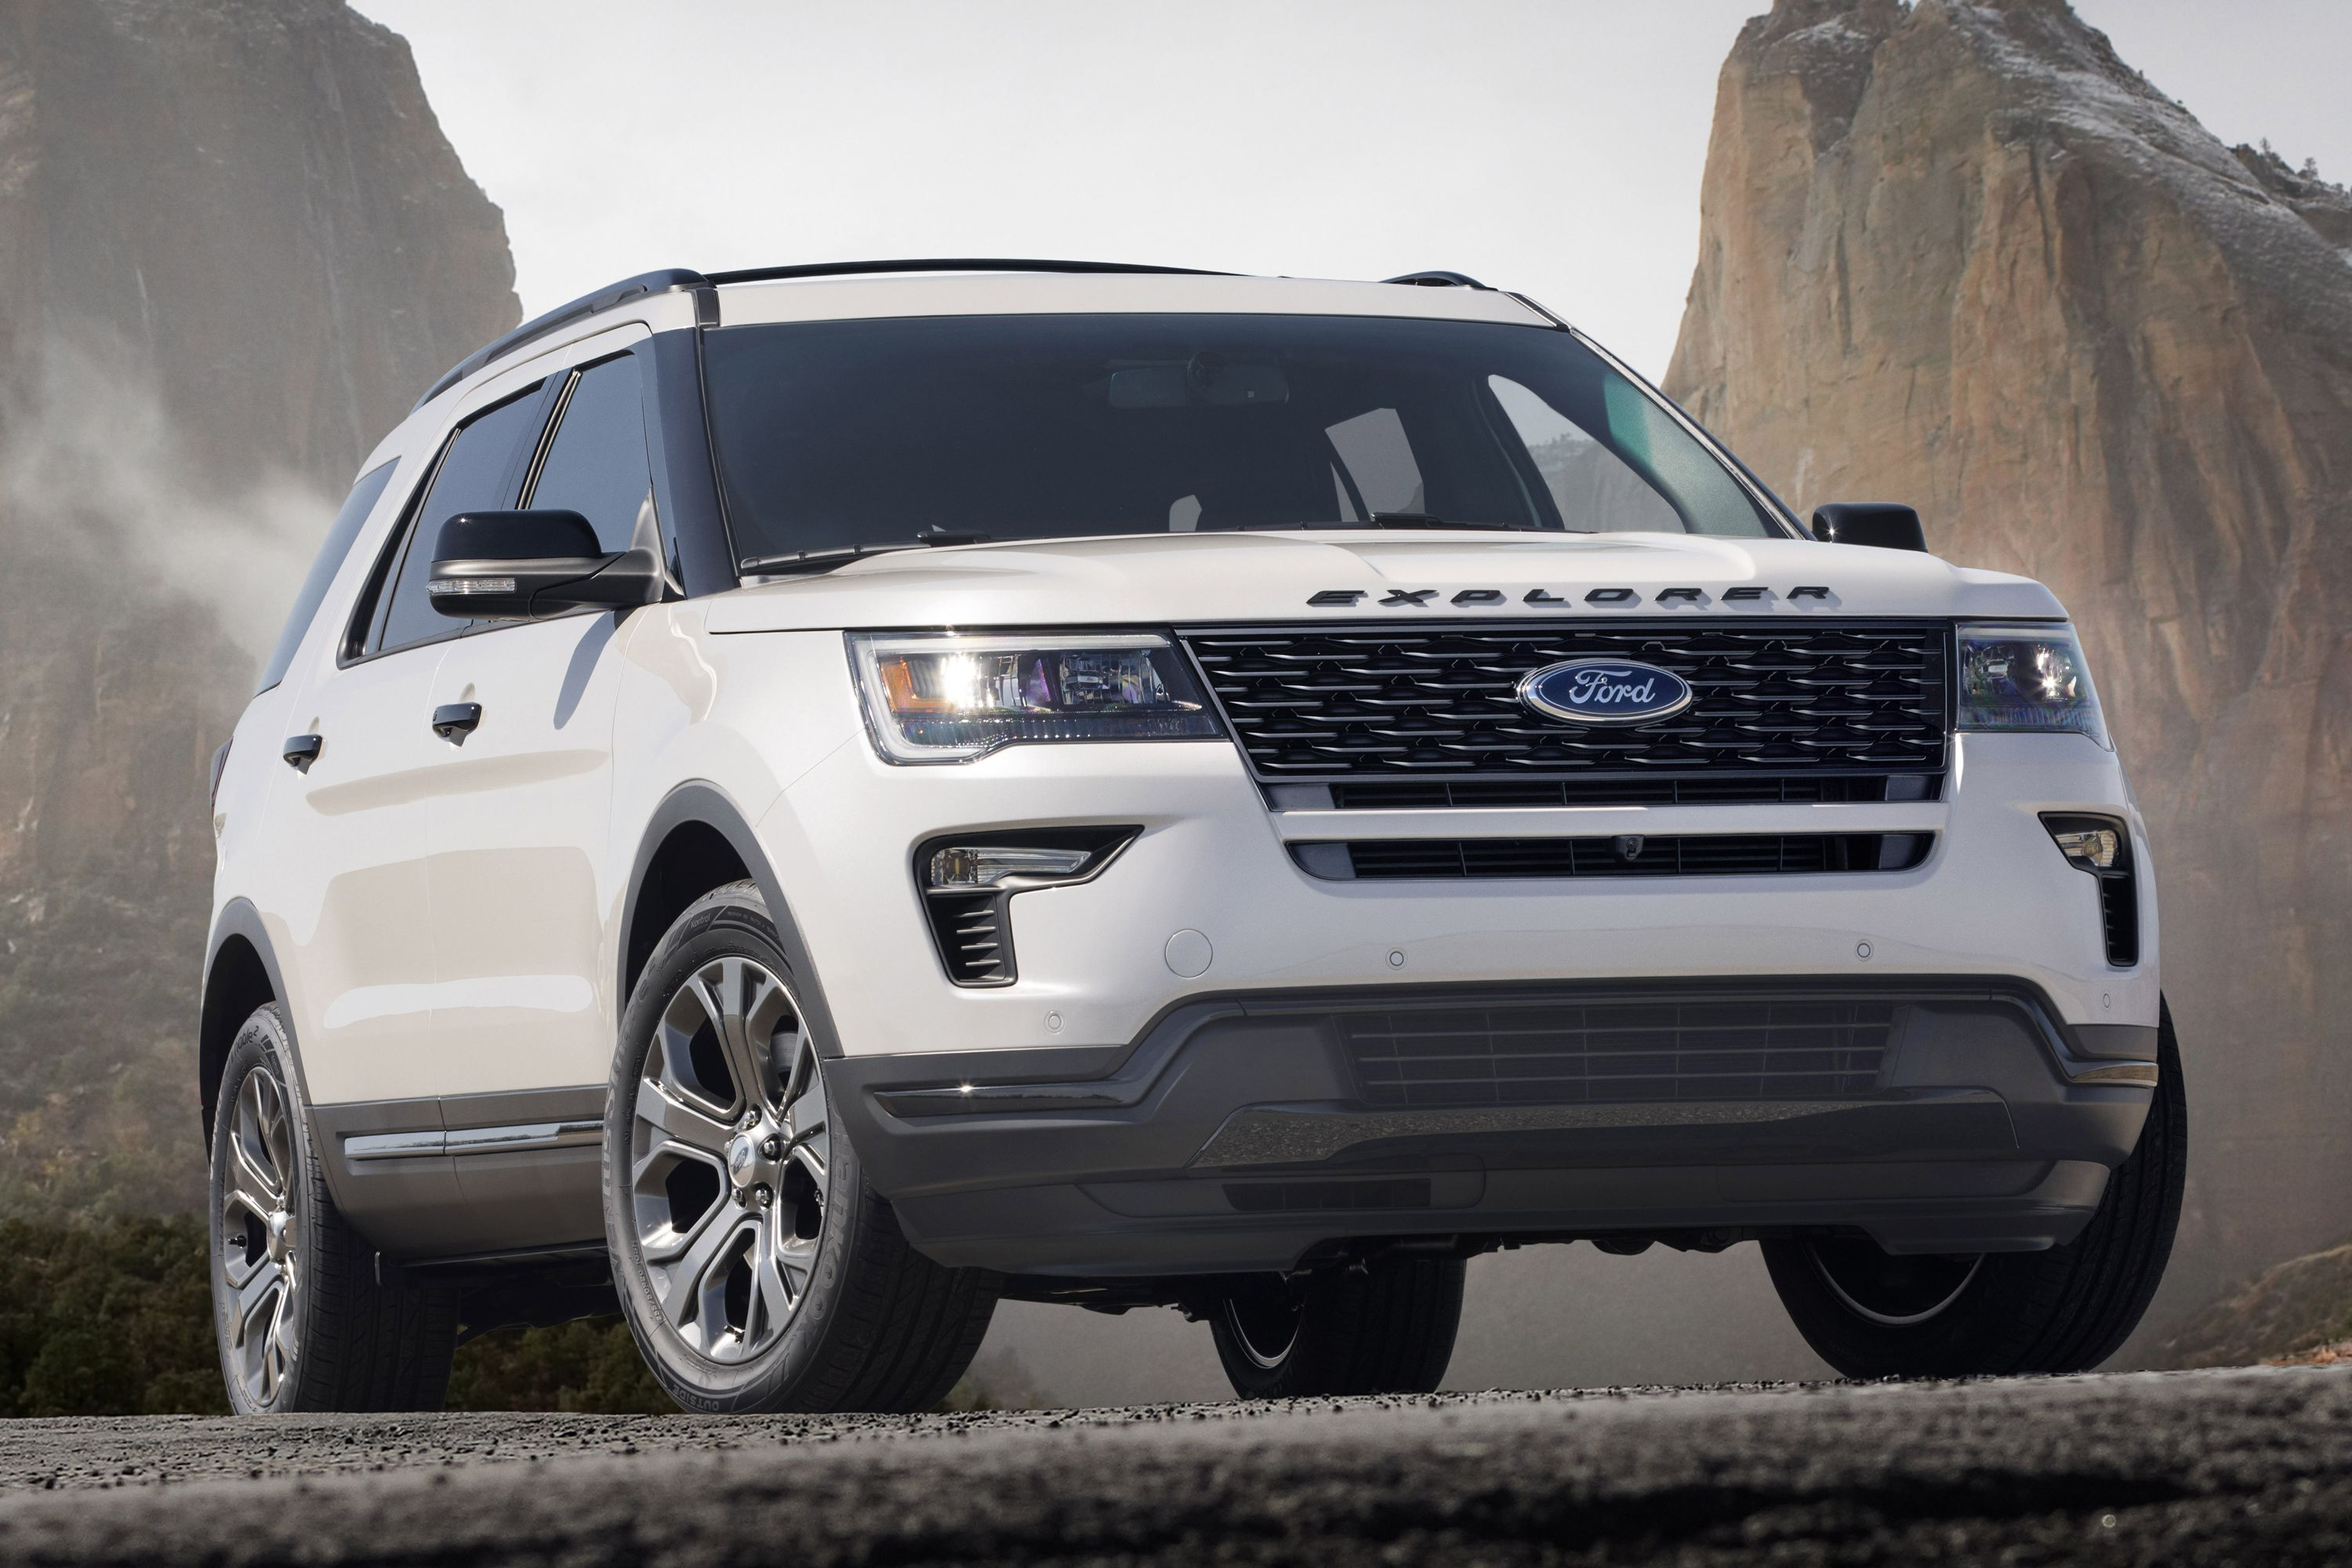 80 New 2020 Ford Explorer Sports Release Date